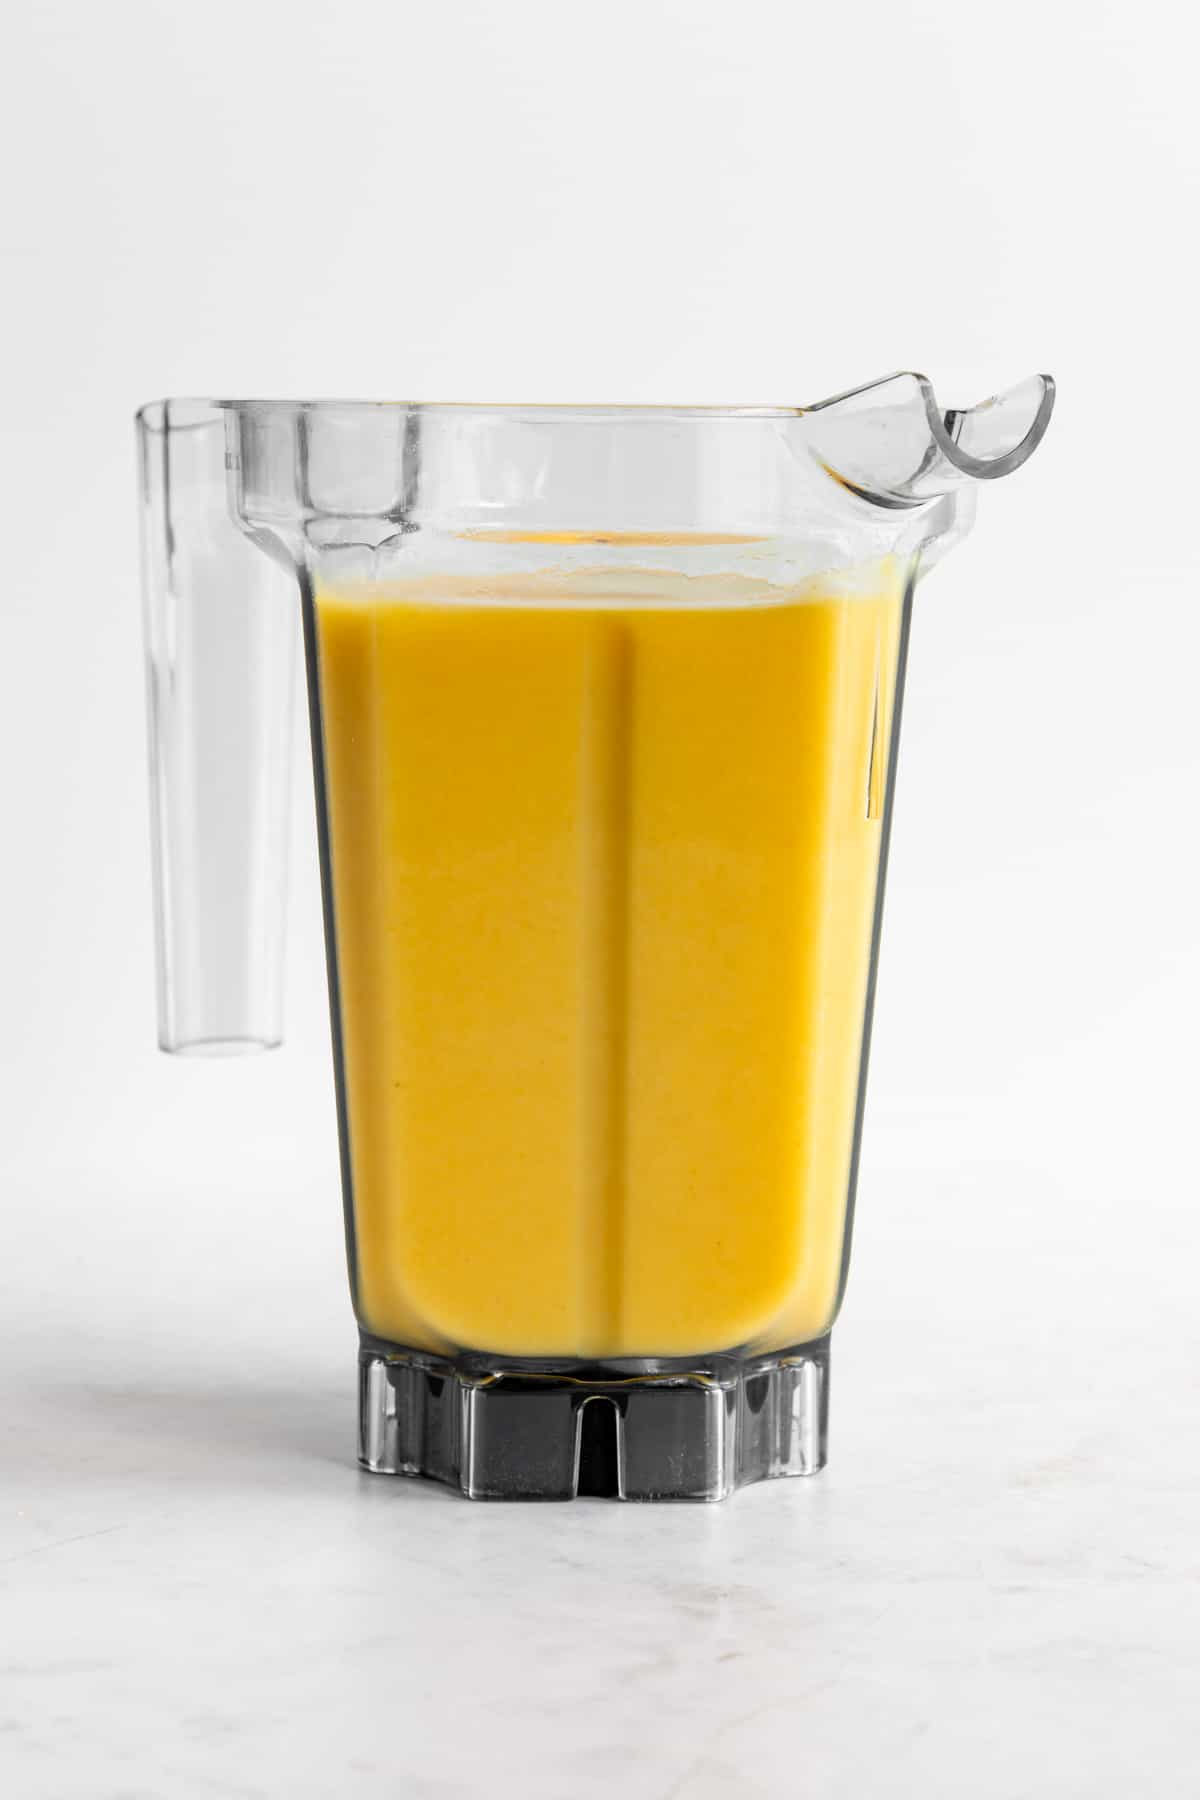 a yellow smoothie inside a vitamix blender